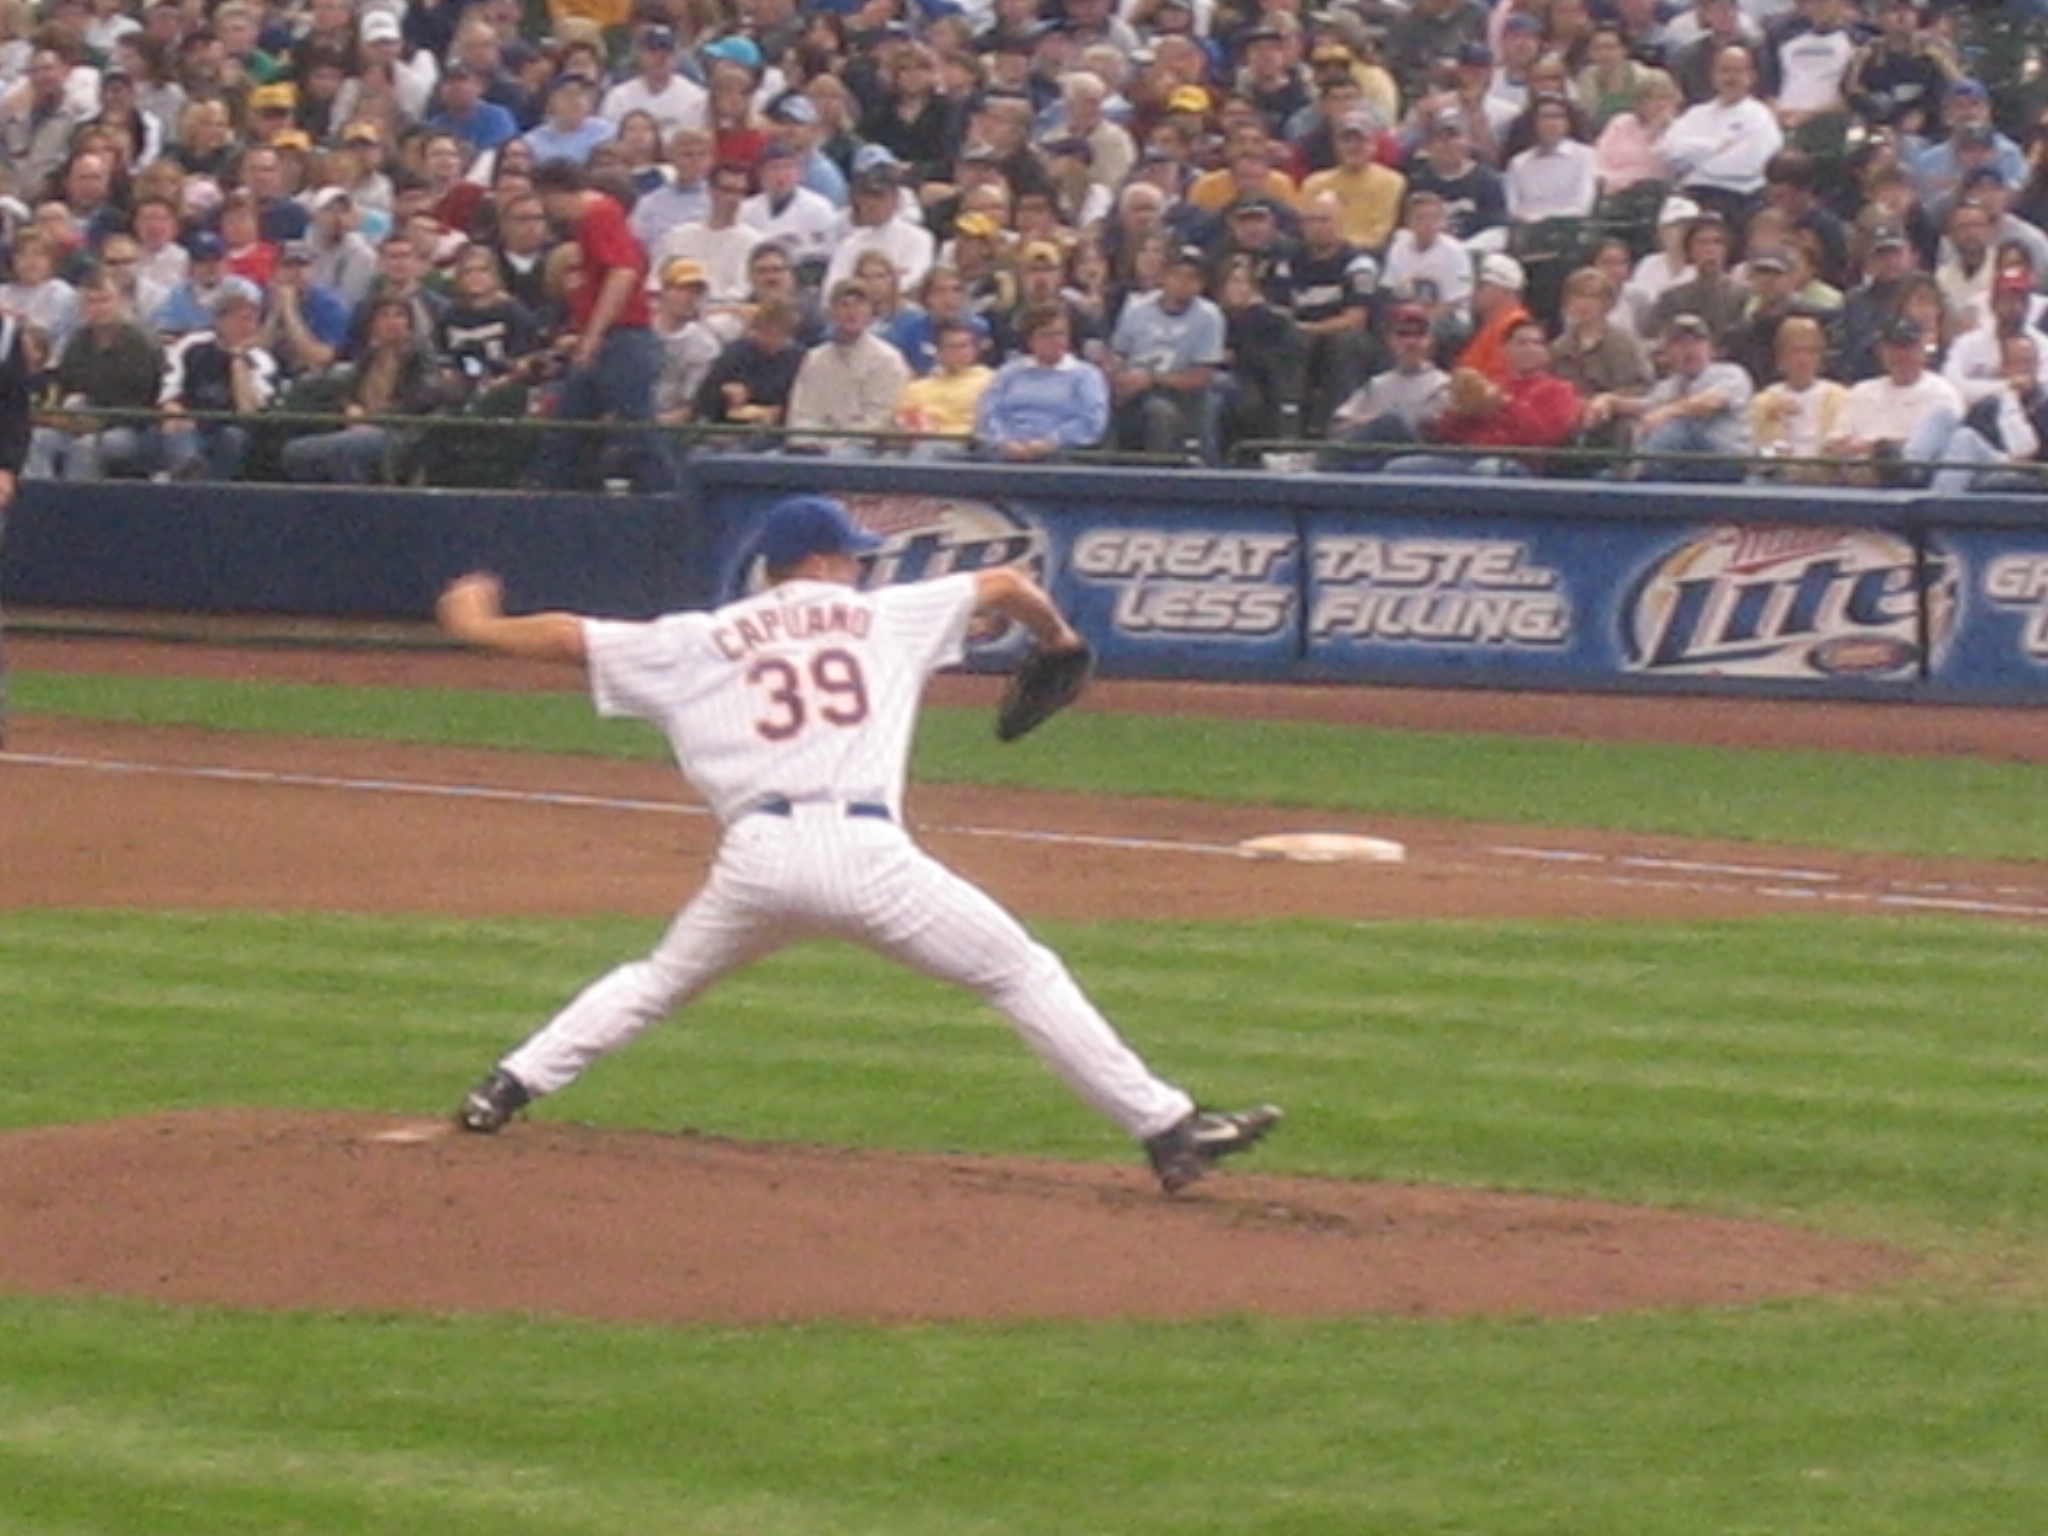 Chris Capuano of the Milwaukee Brewers throwing the ball